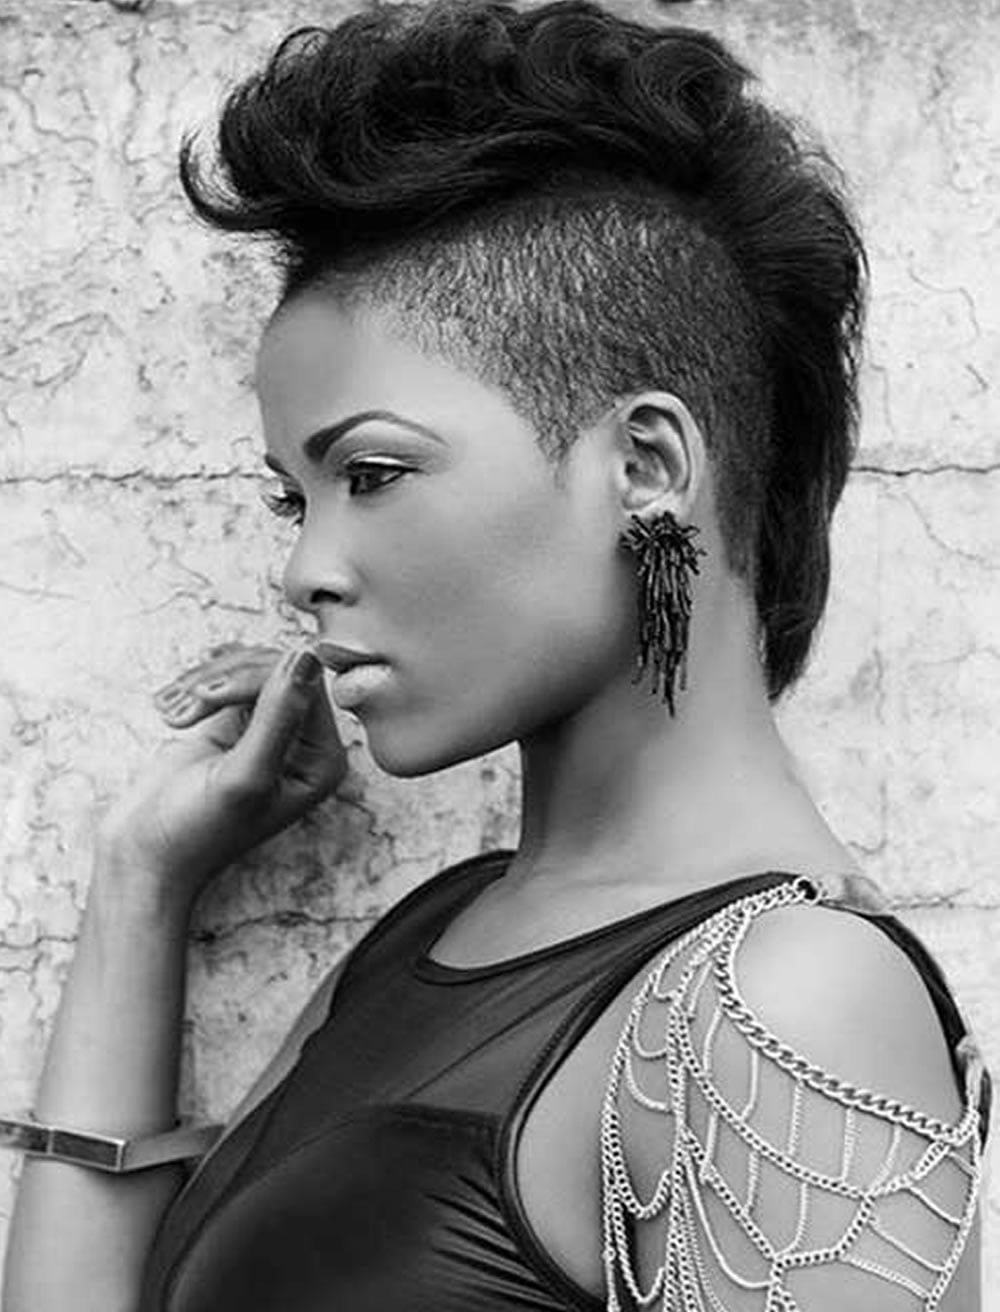 Mohawk hairstyles for black women in summer 2020-2021 - Page 8 - HAIRSTYLES